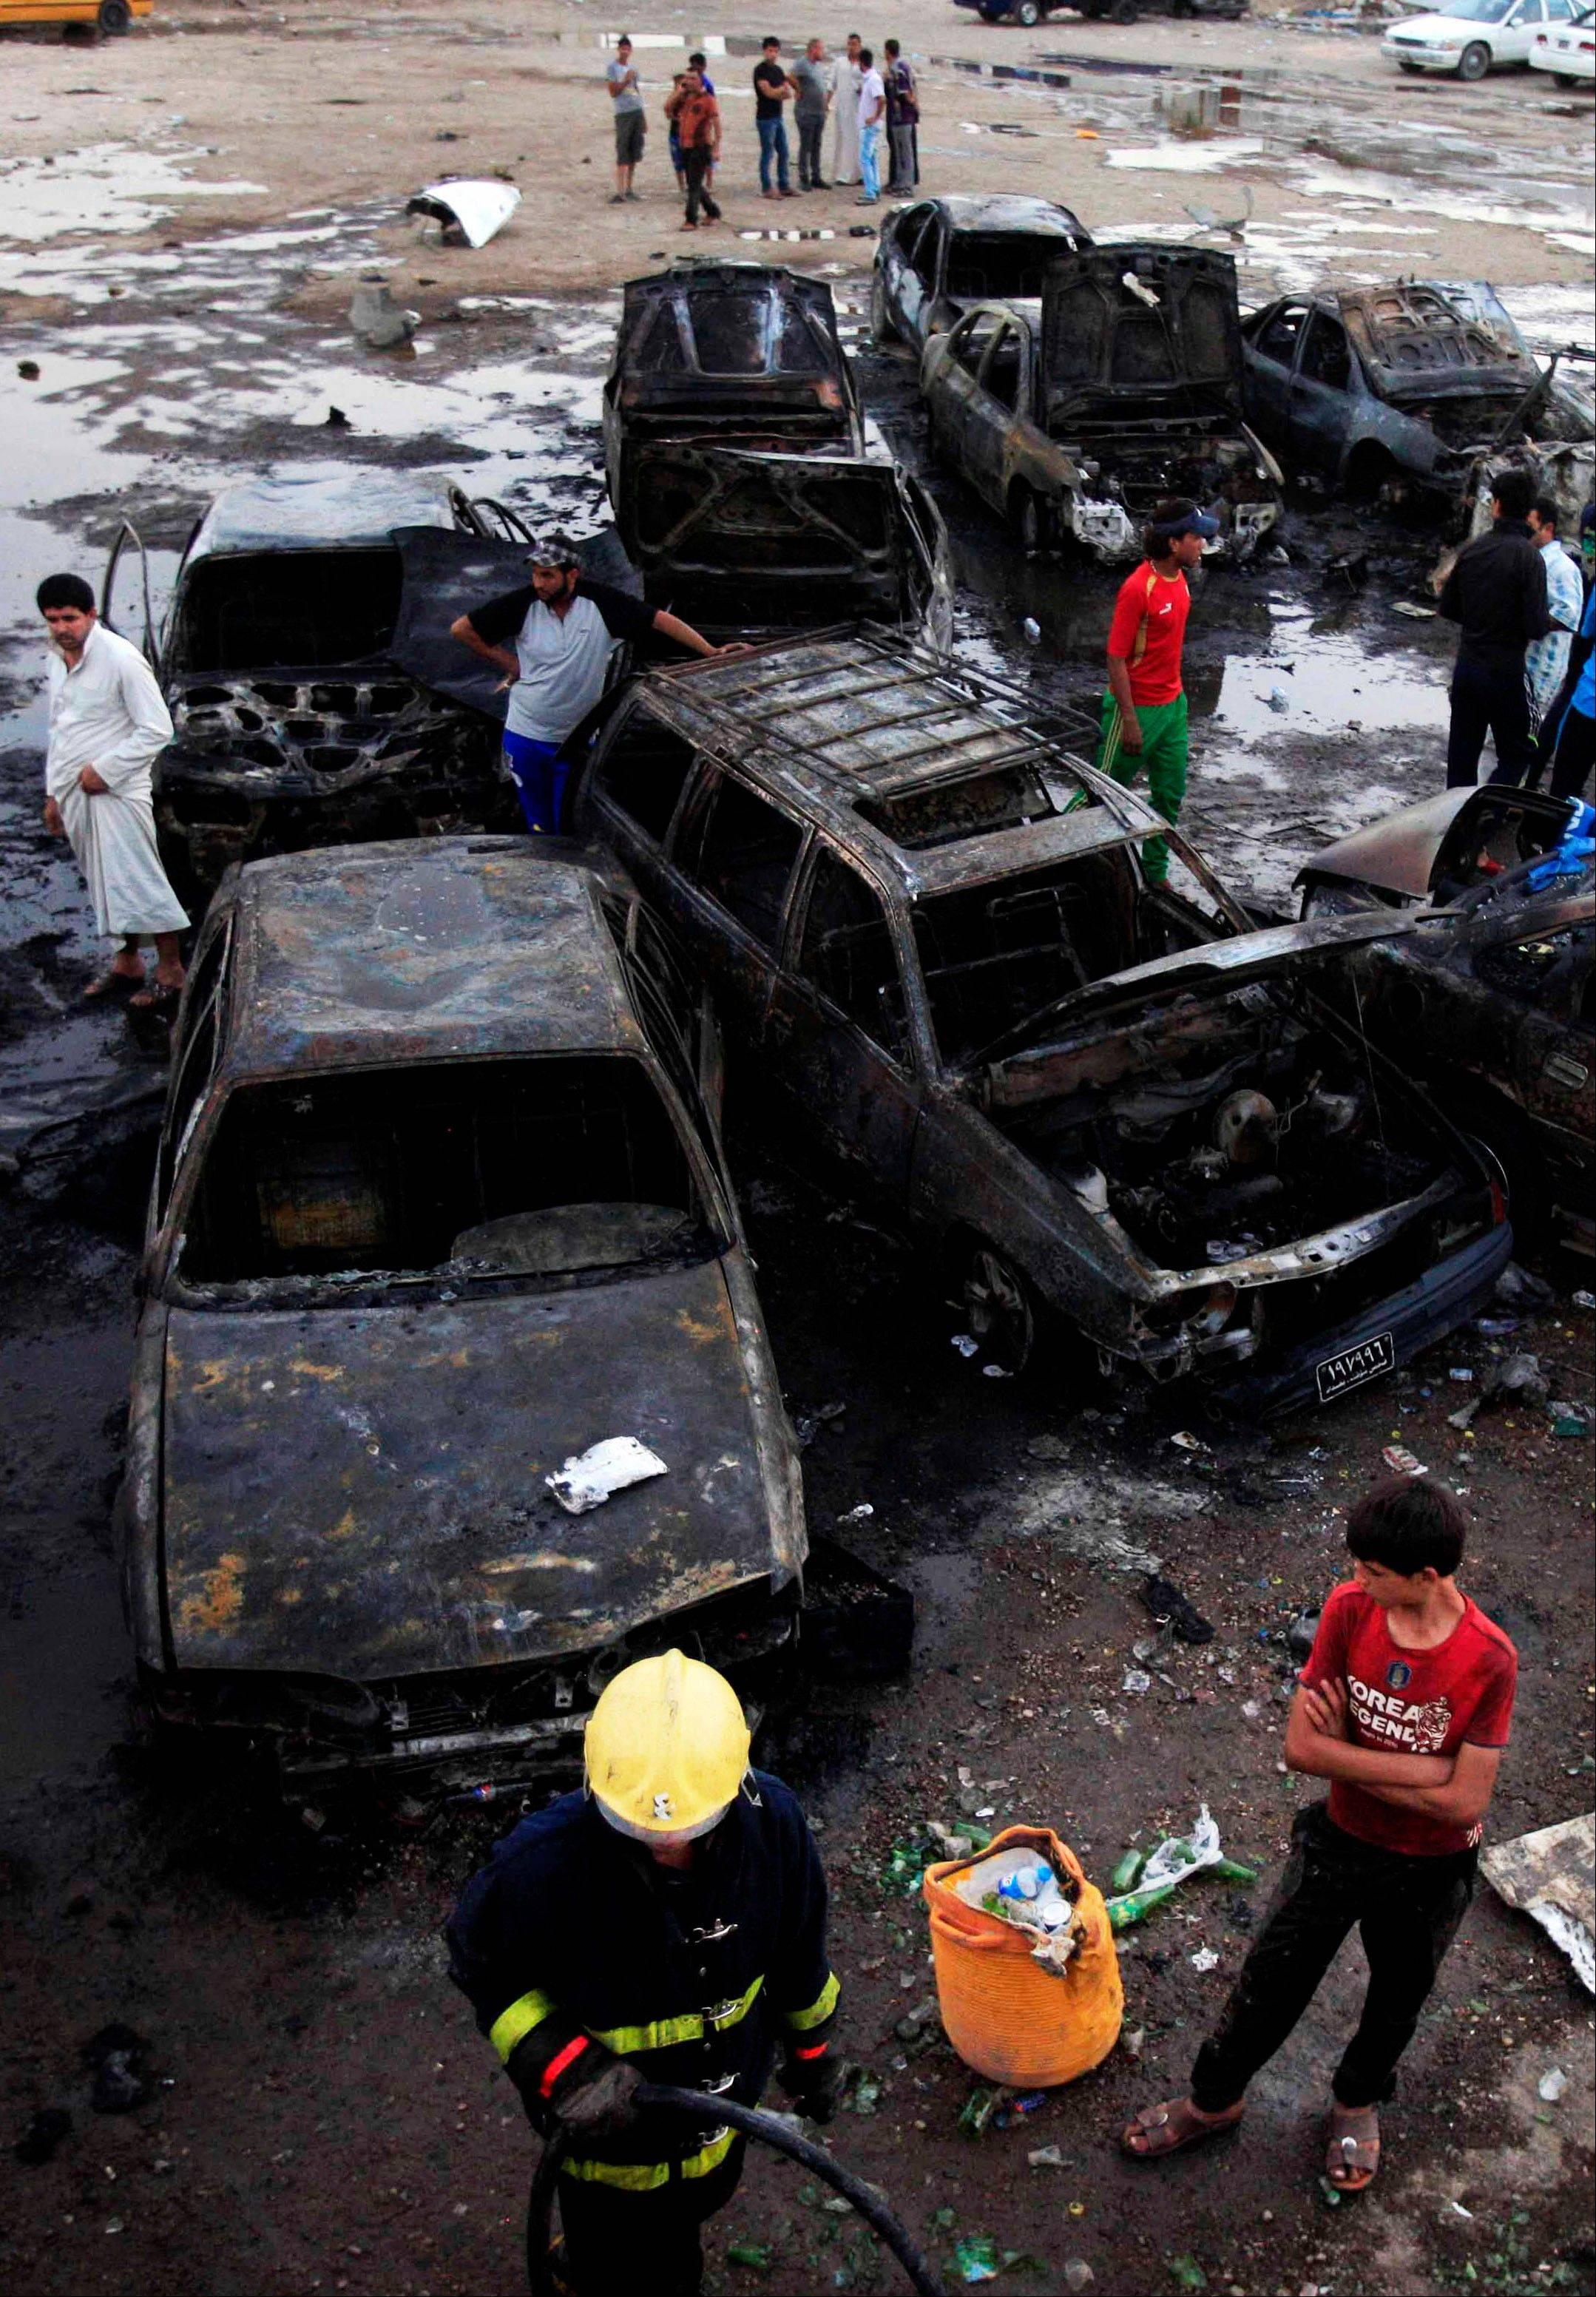 Iraqis gather at the scene of a car bomb attack at a used cars dealers parking lot in Habibiya neighborhood of eastern Baghdad, Iraq, Monday, May 27, 2013. A wave of car bombings tore through mostly Shiite Muslim neighborhoods of the Baghdad area, killing and wounding dozens of people, police said, in the latest outburst of an unusually intense wave of bloodshed roiling Iraq. The blasts are the latest indication that Iraq's security is rapidly deteriorating.